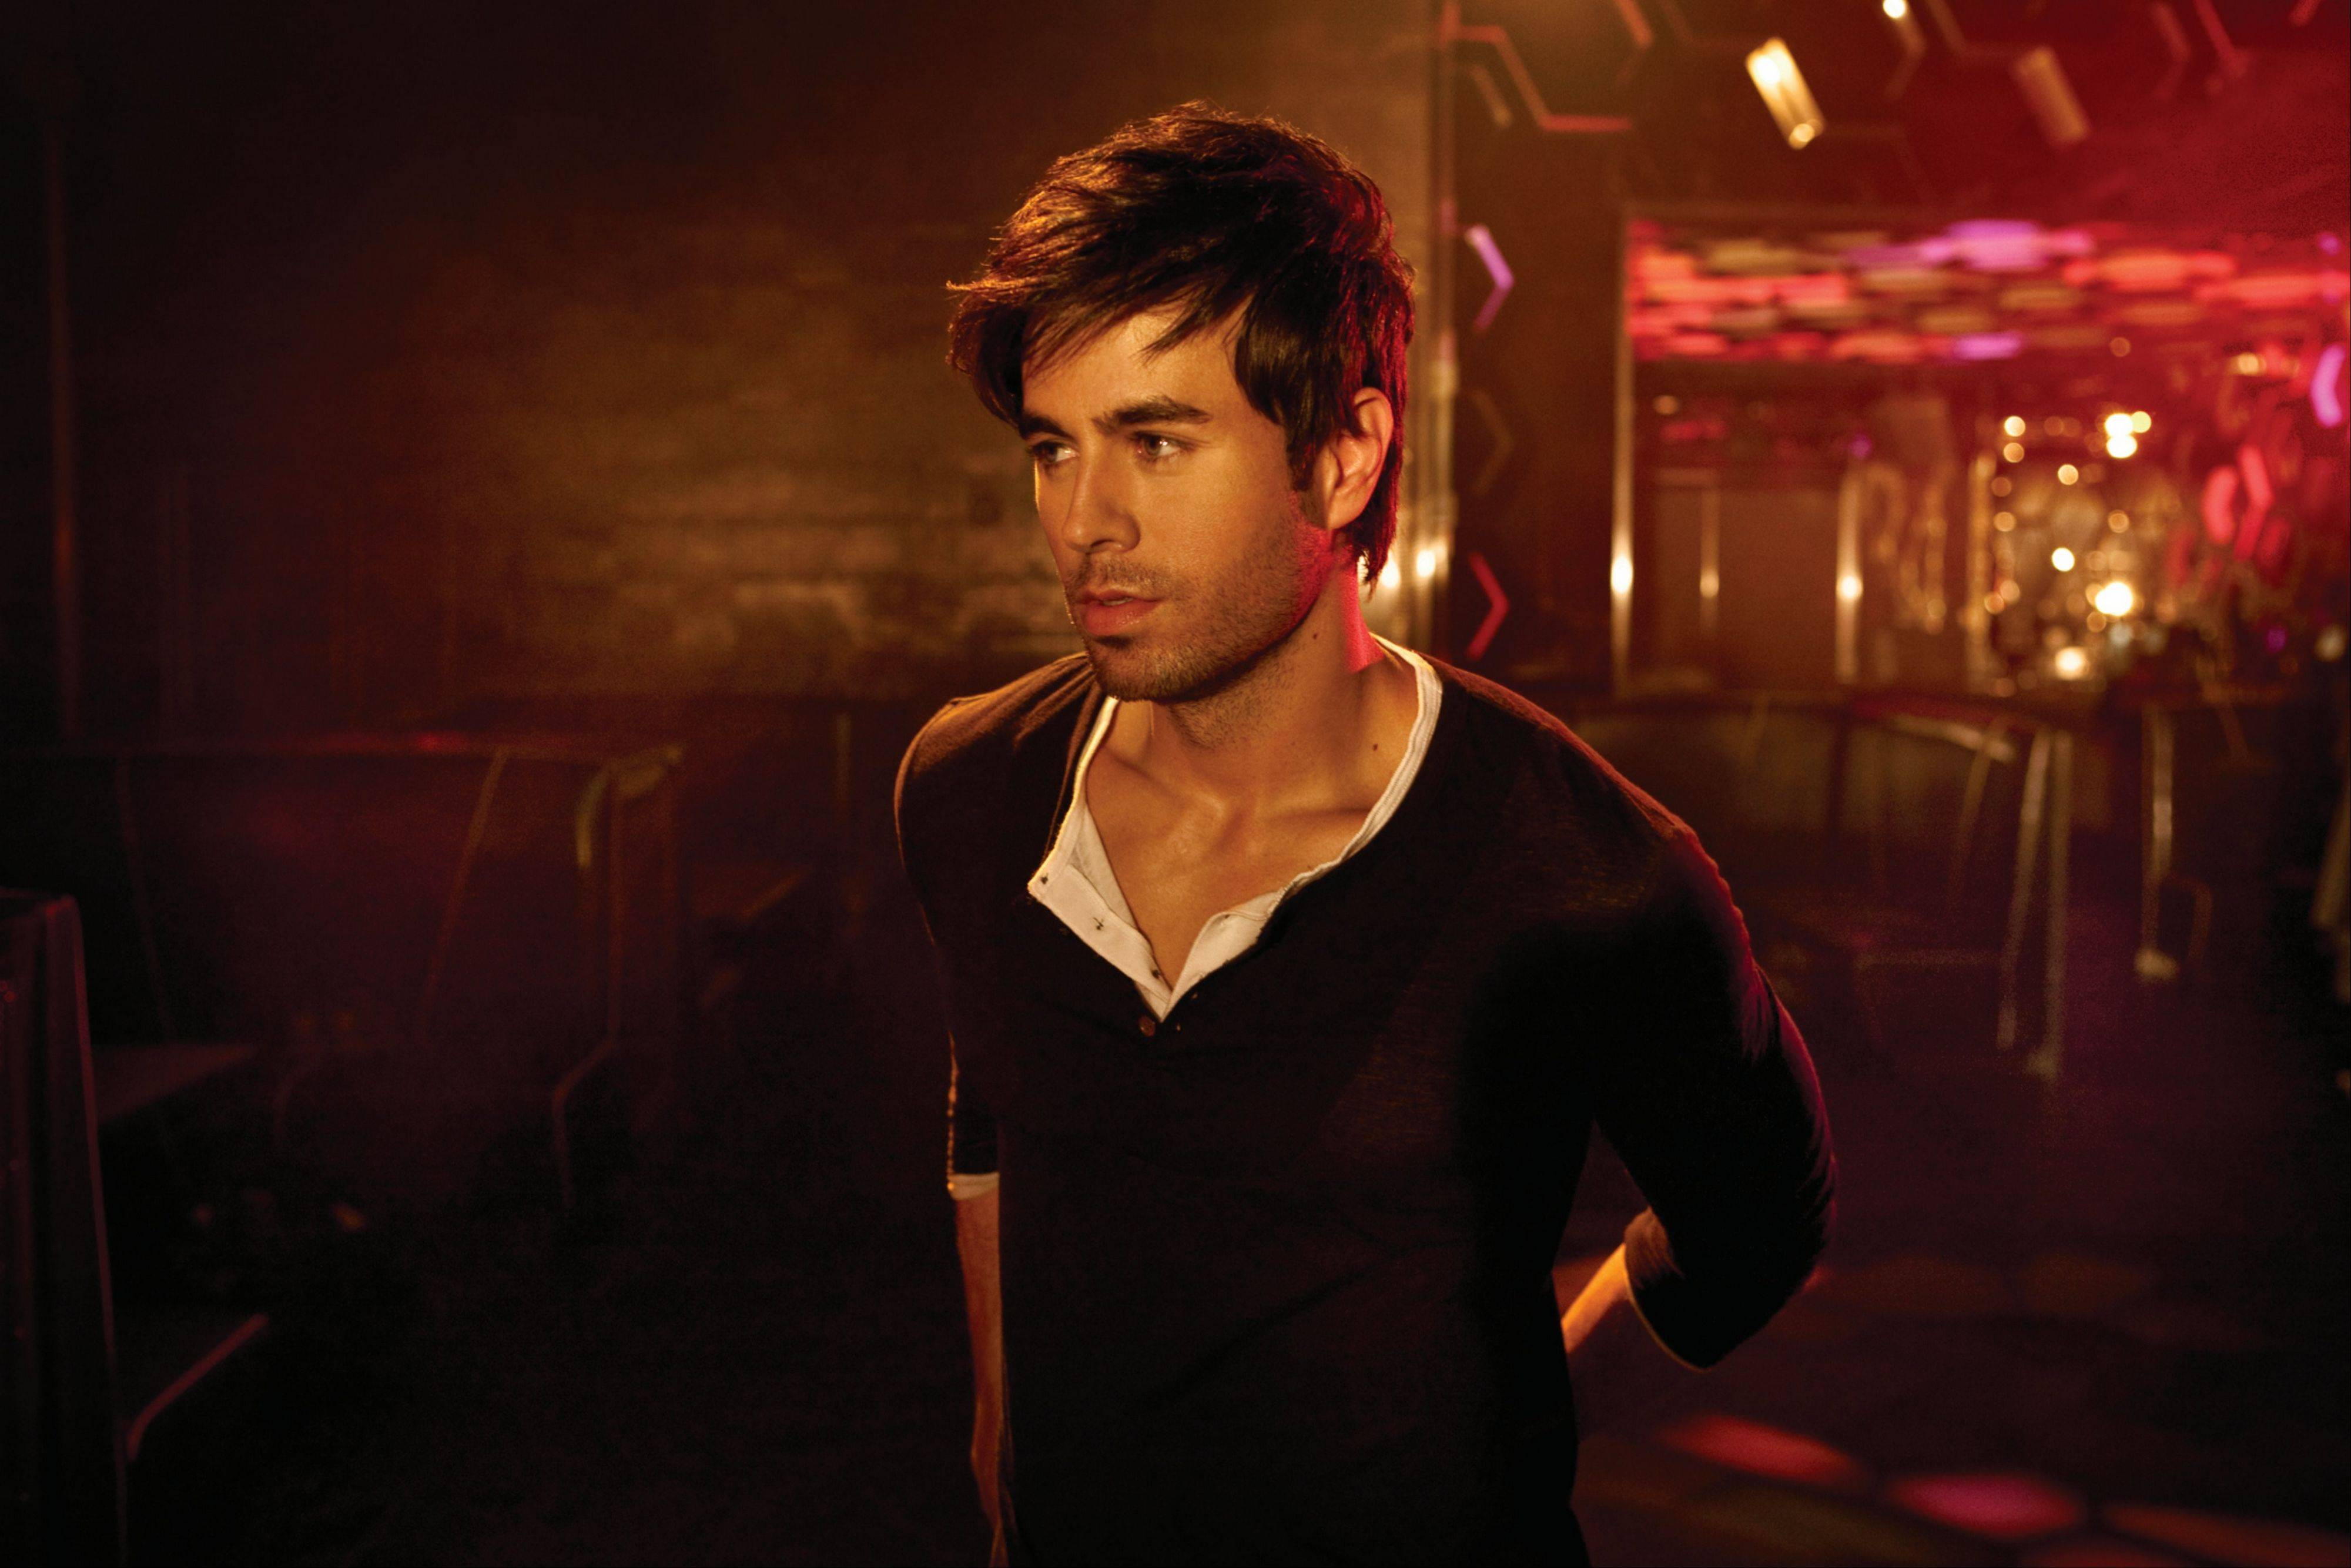 Weekend picks: Enrique Iglesias' Euphoria Tour stops at Allstate